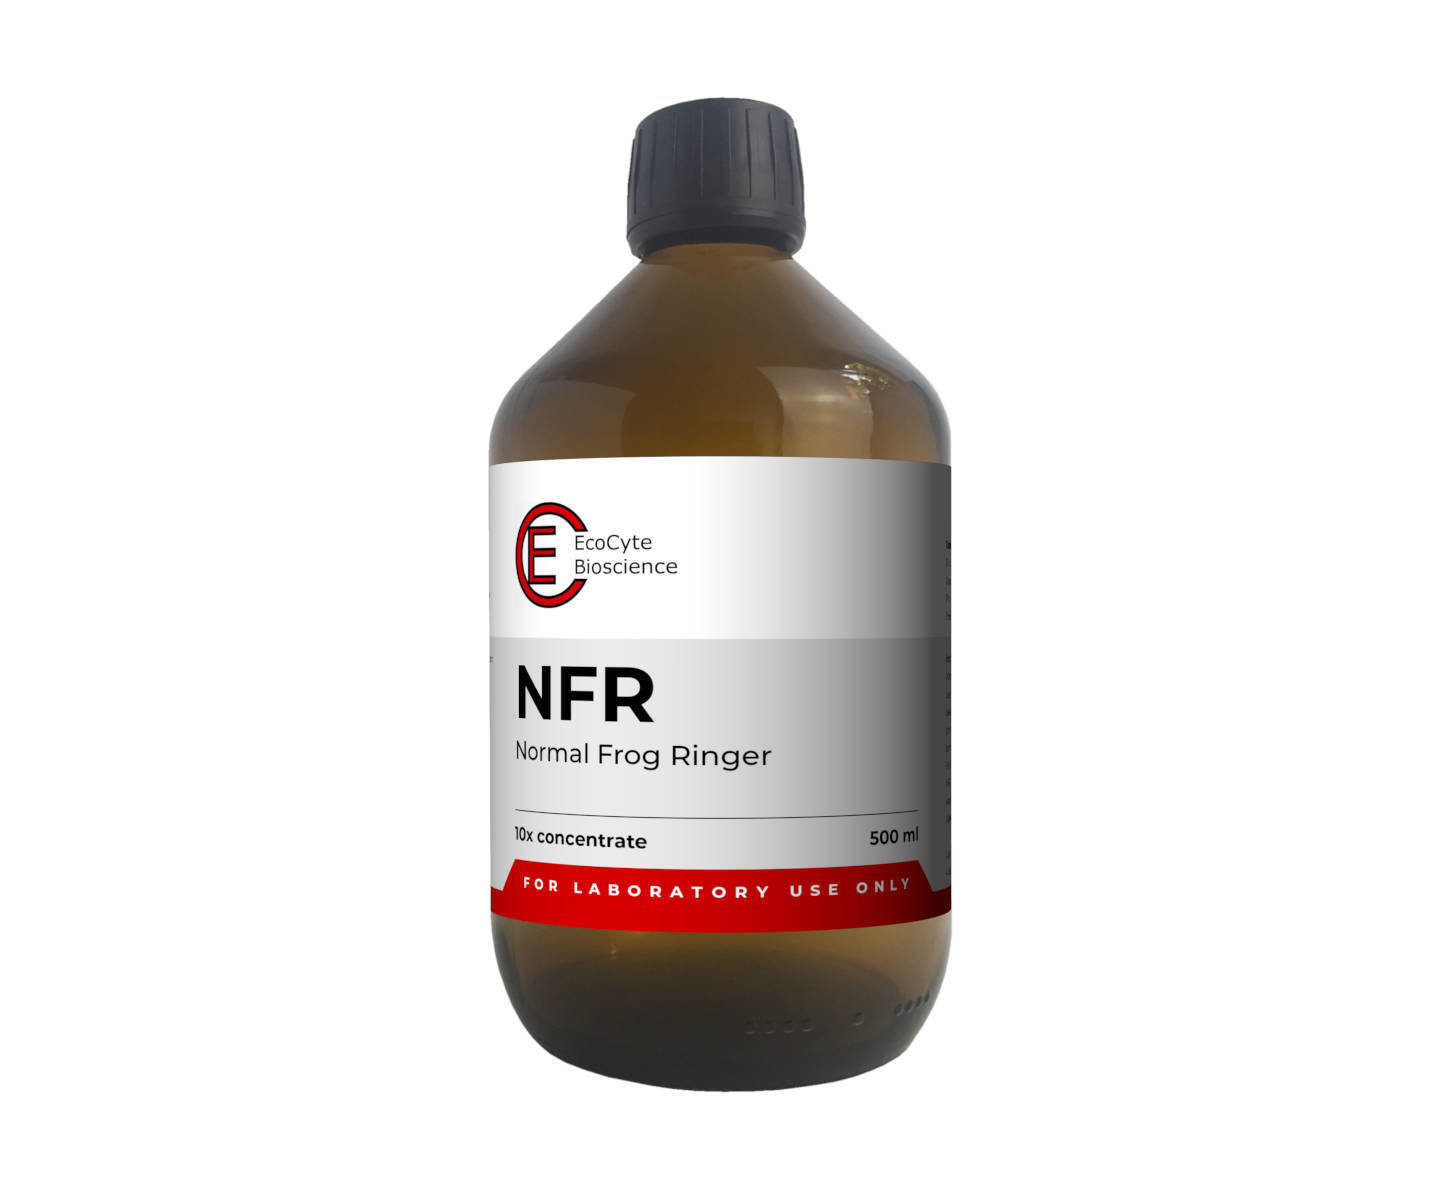 NFR – Normal Frog Ringer [10x concentrate]